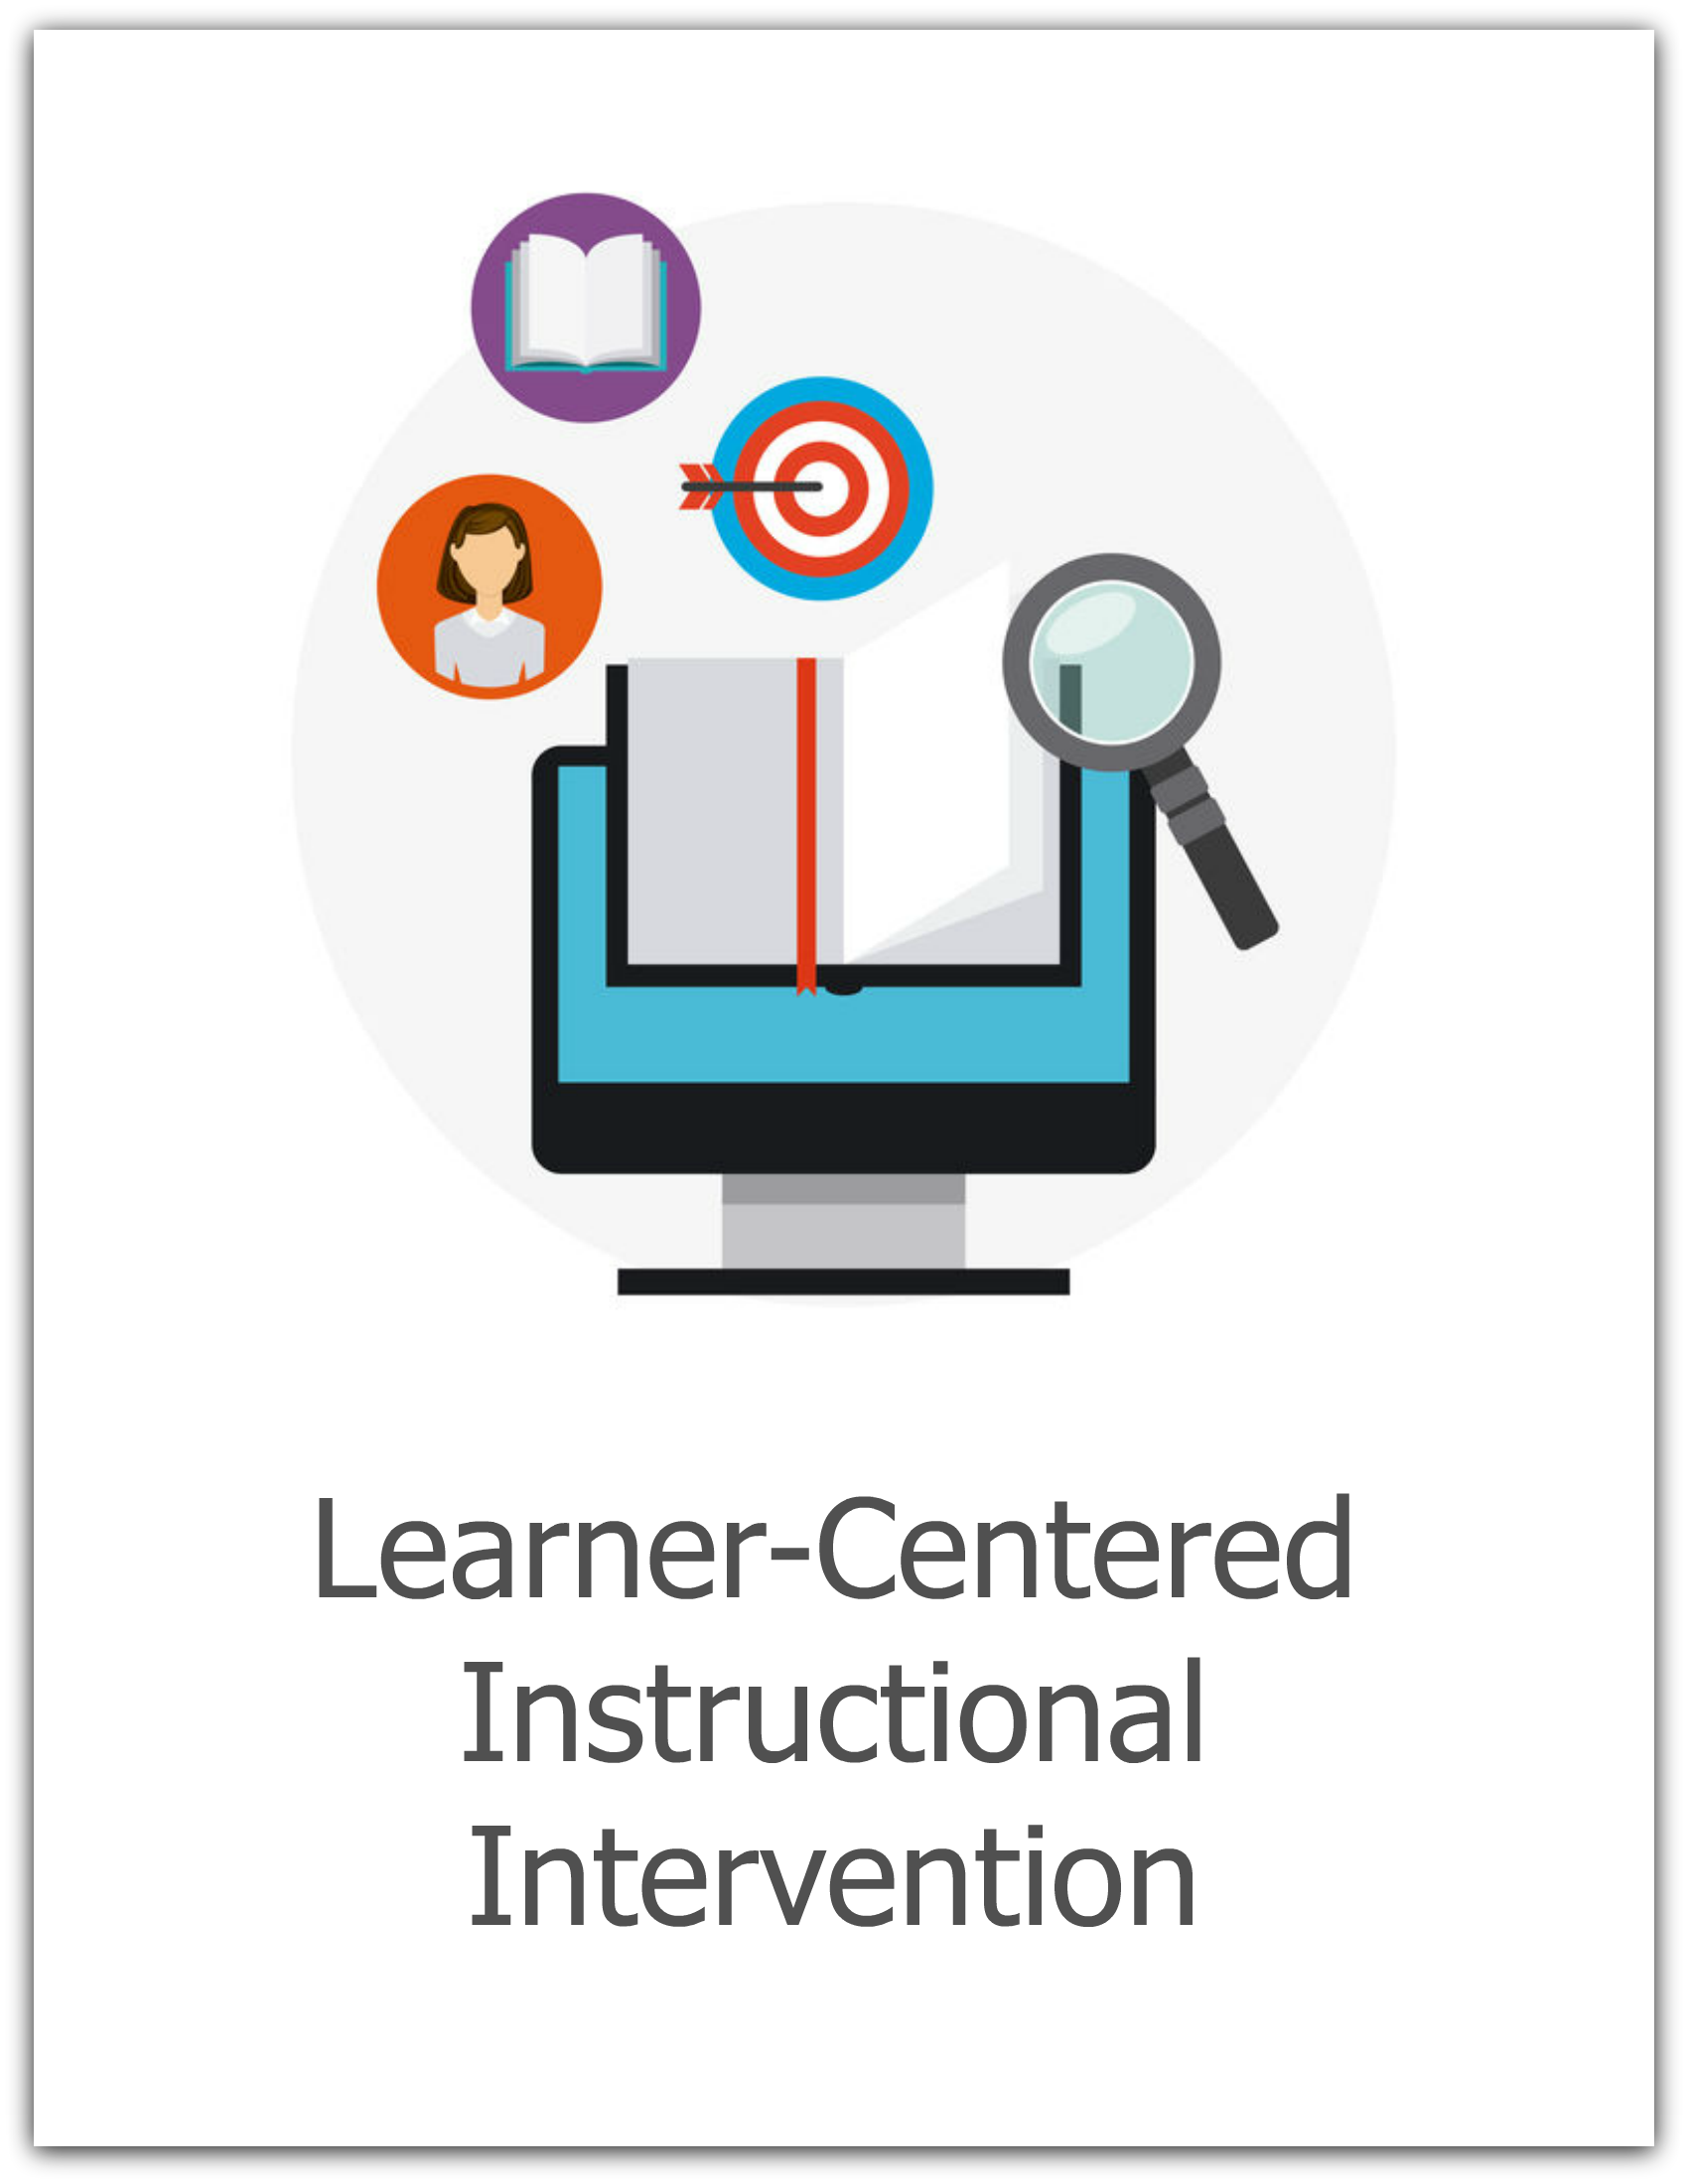 Learner-Centered Instructional Intervention